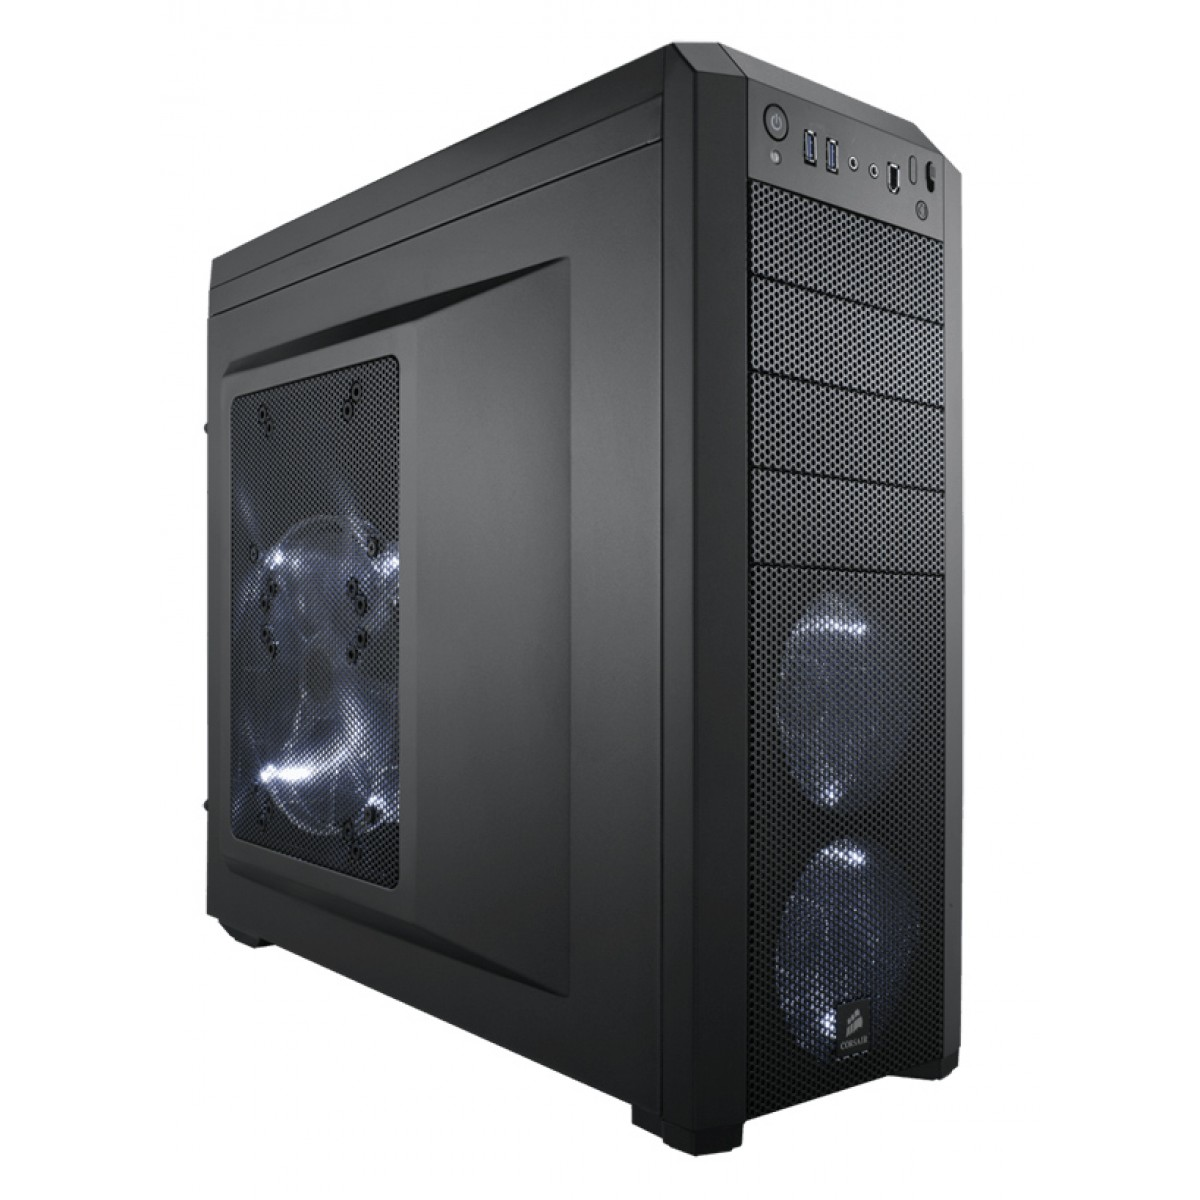 CORSAIR Carbide 500R Case